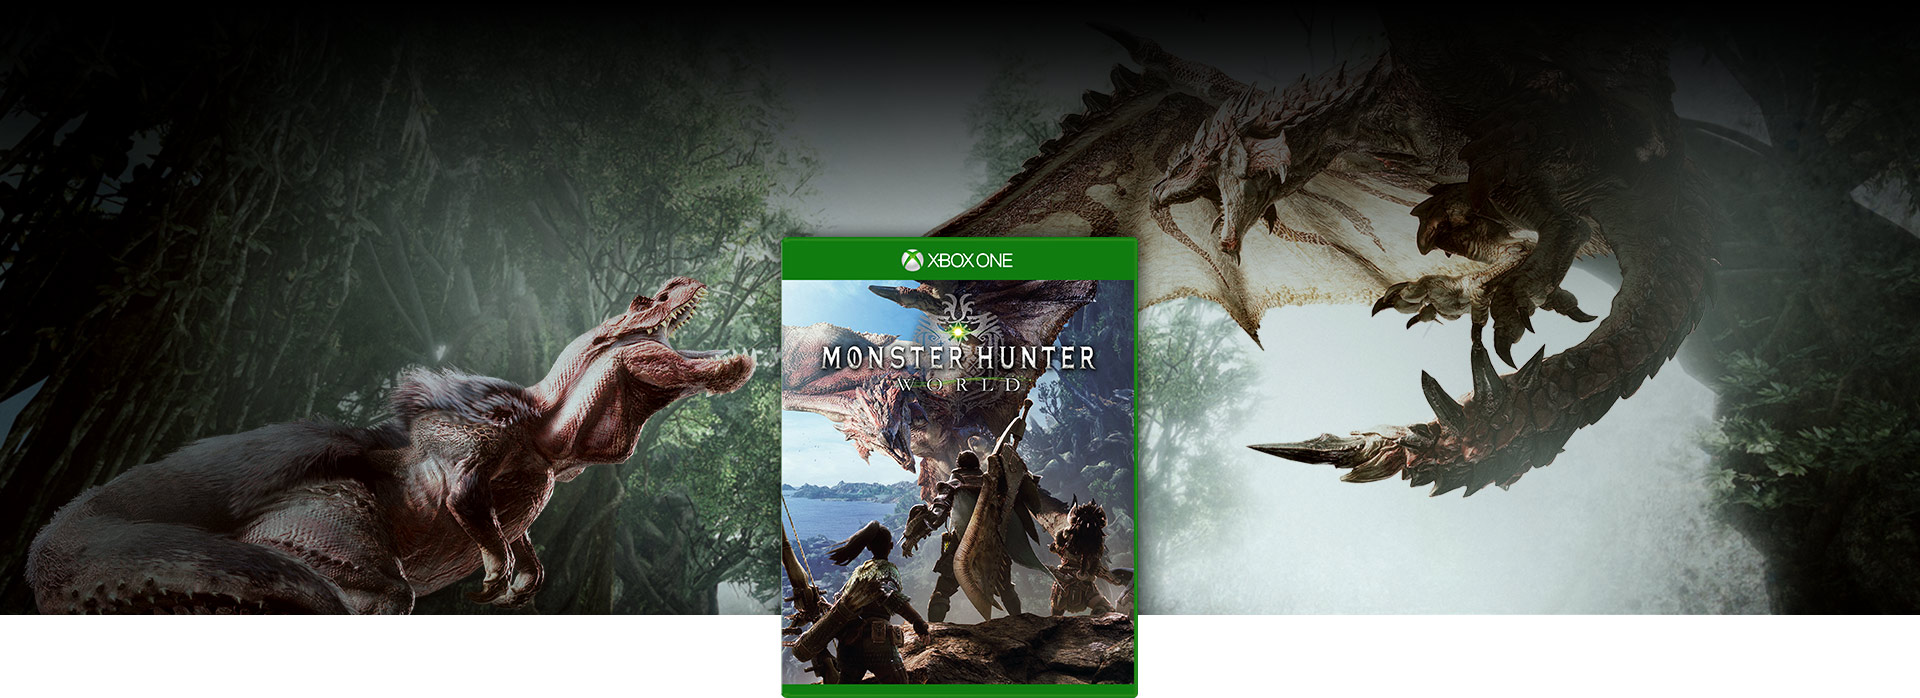 Monster Hunter World-coverbilde, en flyvende drage og en dinosaur i kamp